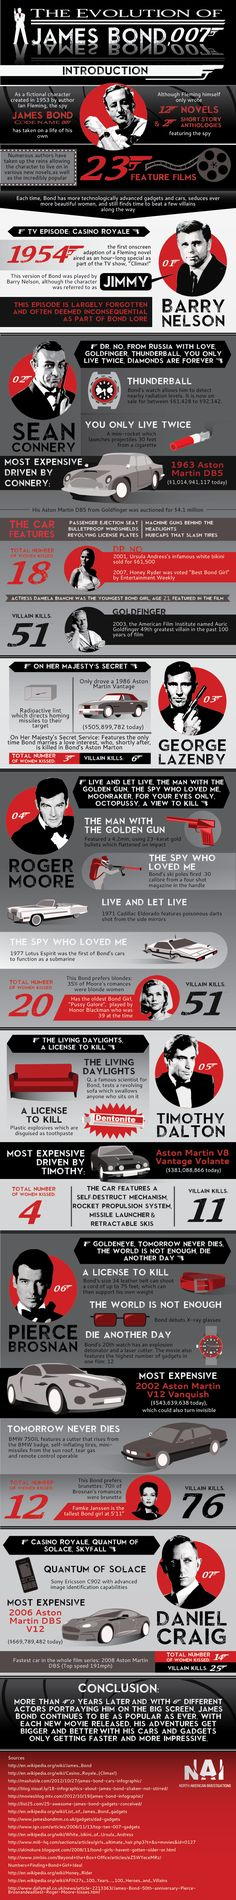 Bond, James Bond. 007. Explore this infographic that details the history of James Bonds' movies, films, and dozen of books.  Learn who some of the most famous actors who played James Bond were, gadgets used, cars driven, and women dated.